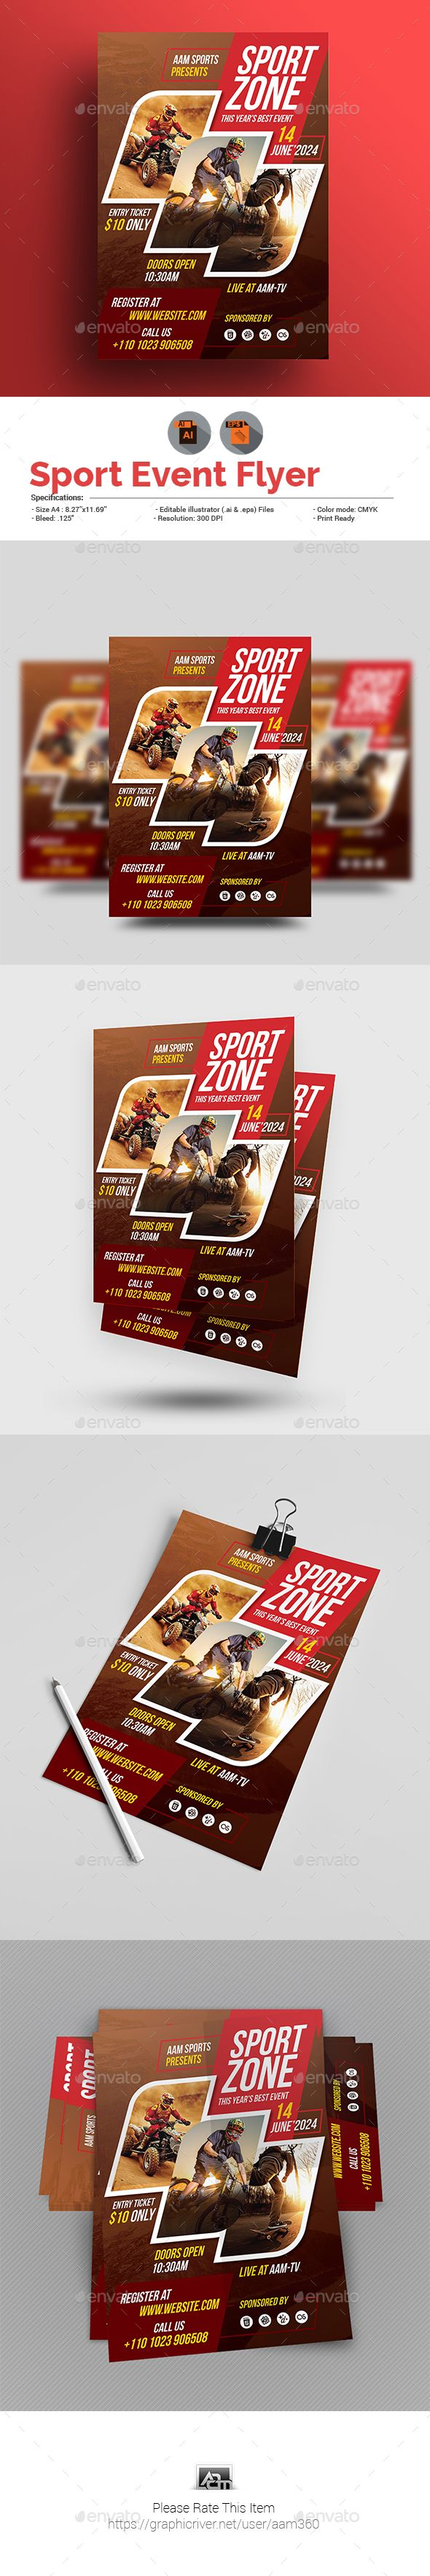 "Sport Event Flyer Template by aam360 Similar Templates:INFORMATIONS FOR THIS FLYER TEMPLATE:FEATURES:Size: 8.27""x11.69""Bleed: .25""Fully editable Illustrator AI & EPS f"